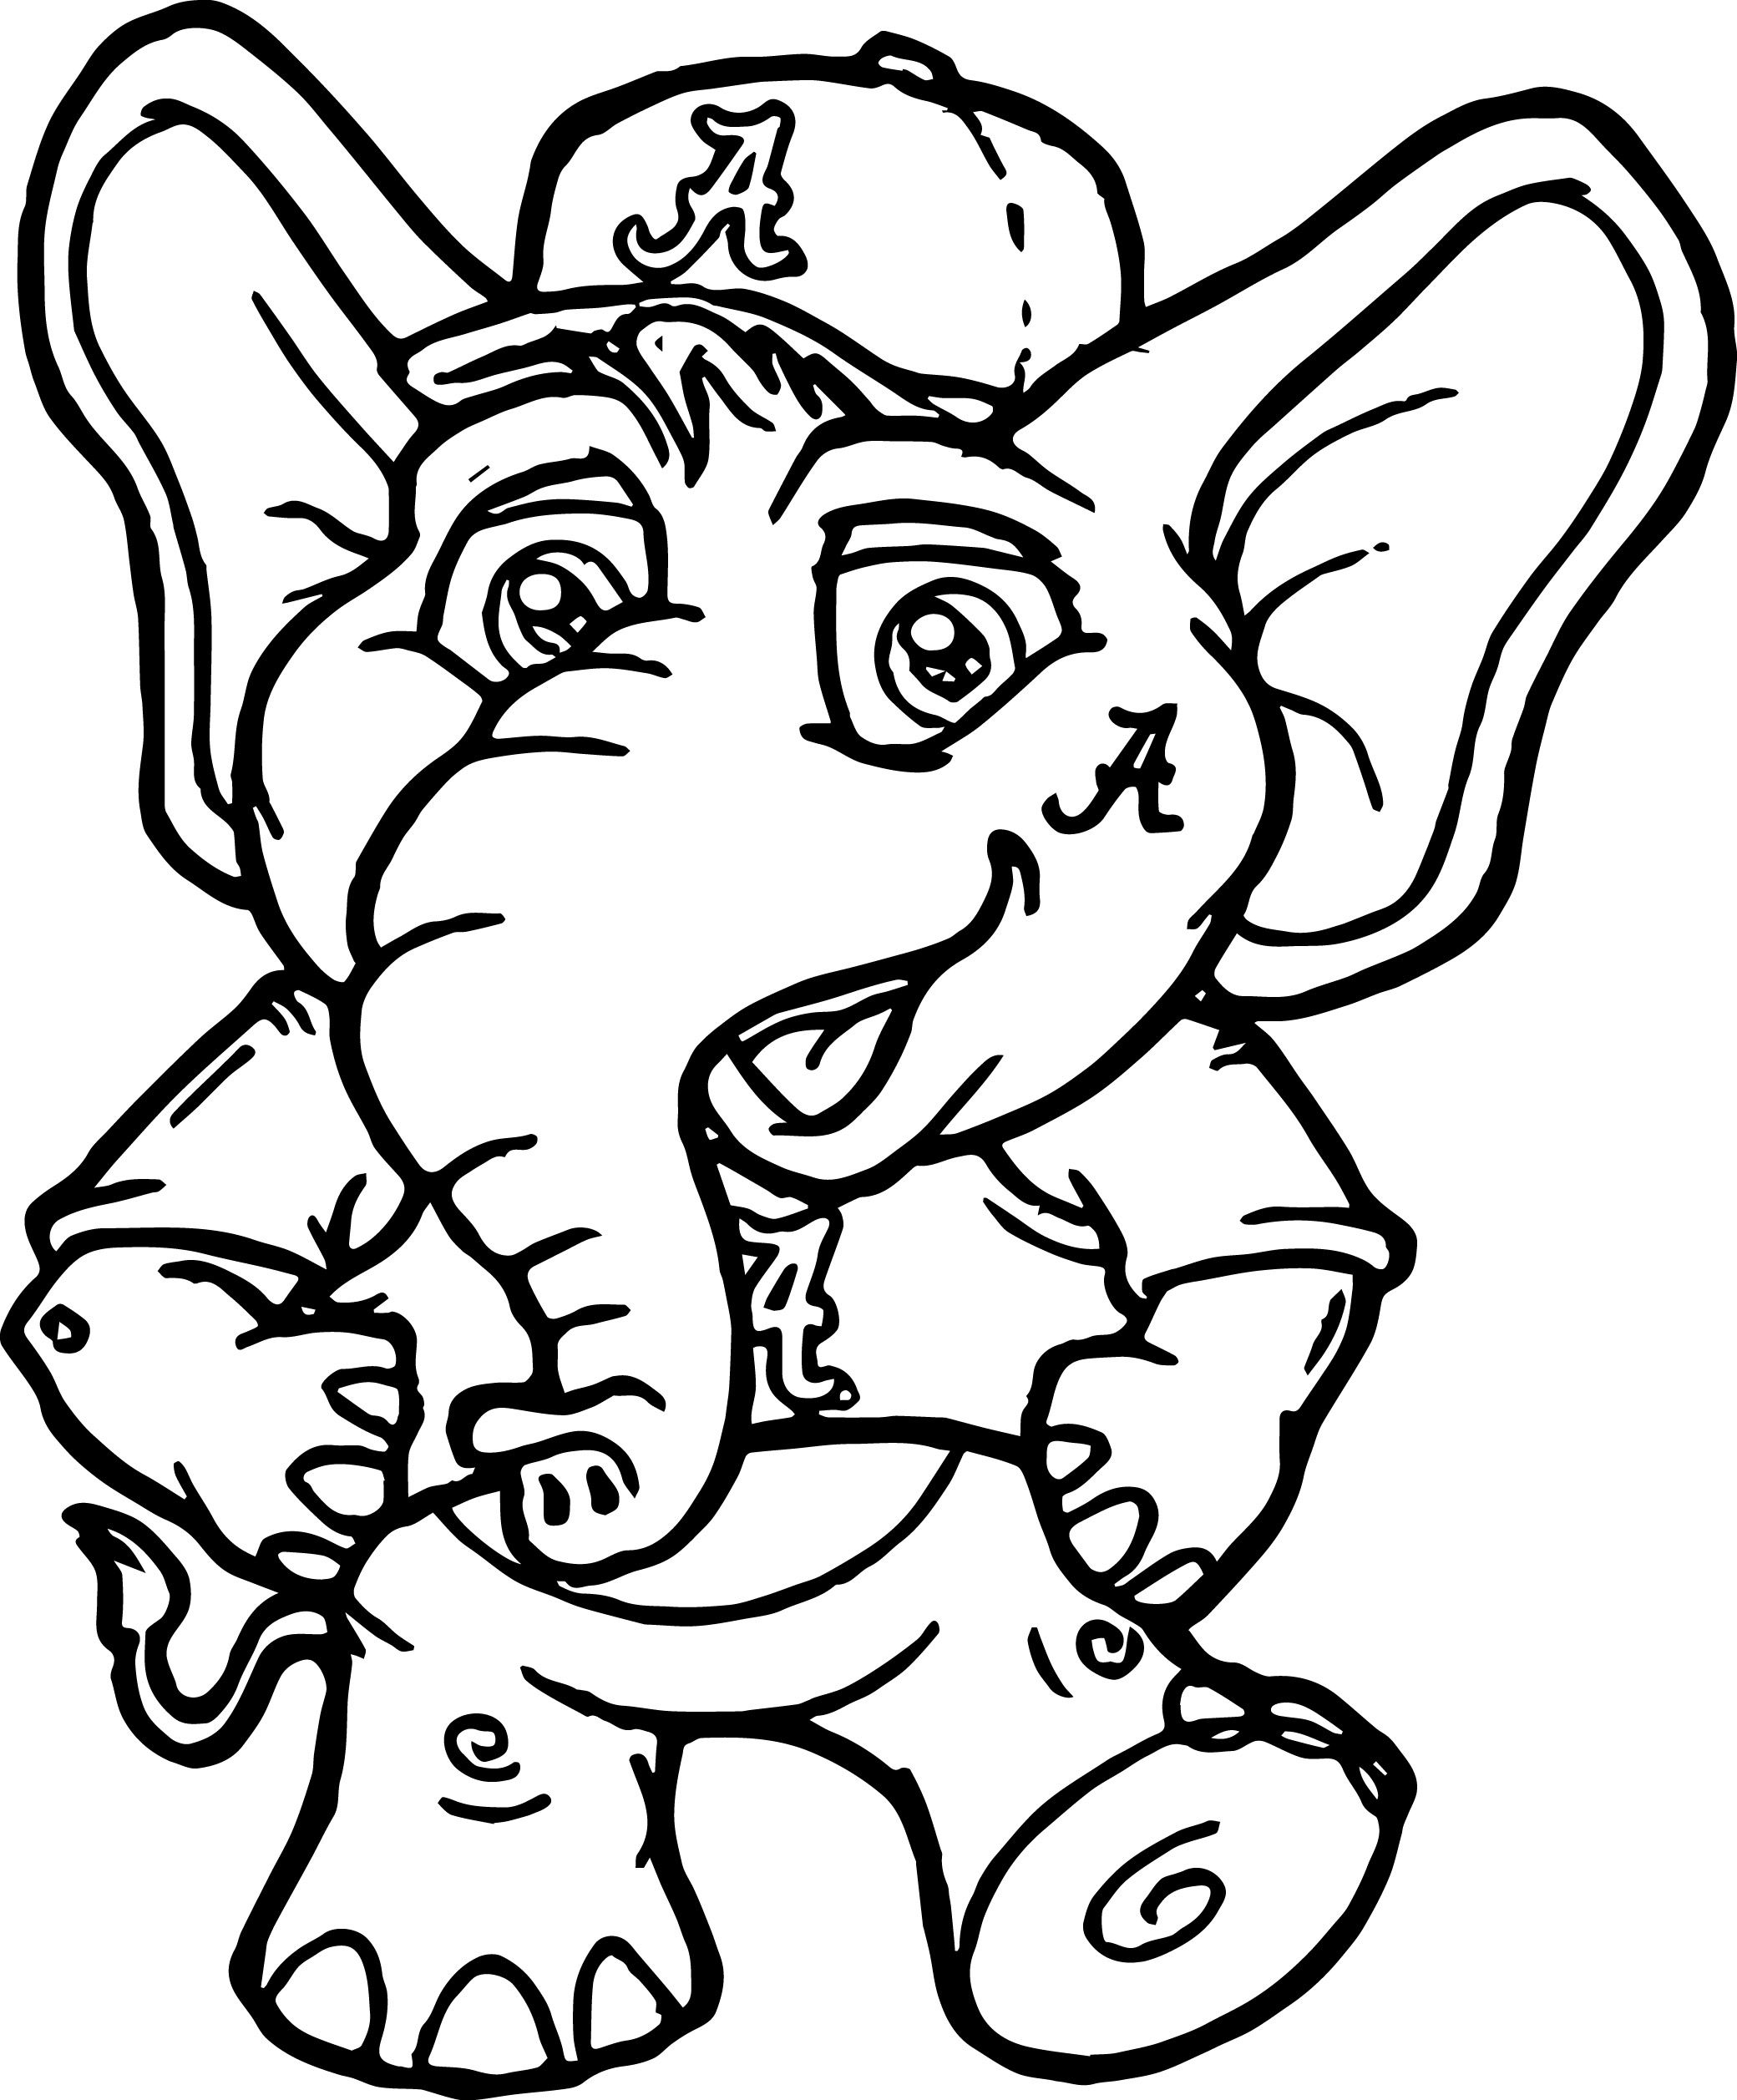 2080x2515 Fsu Coloring Pages Printable Coloring For Kids